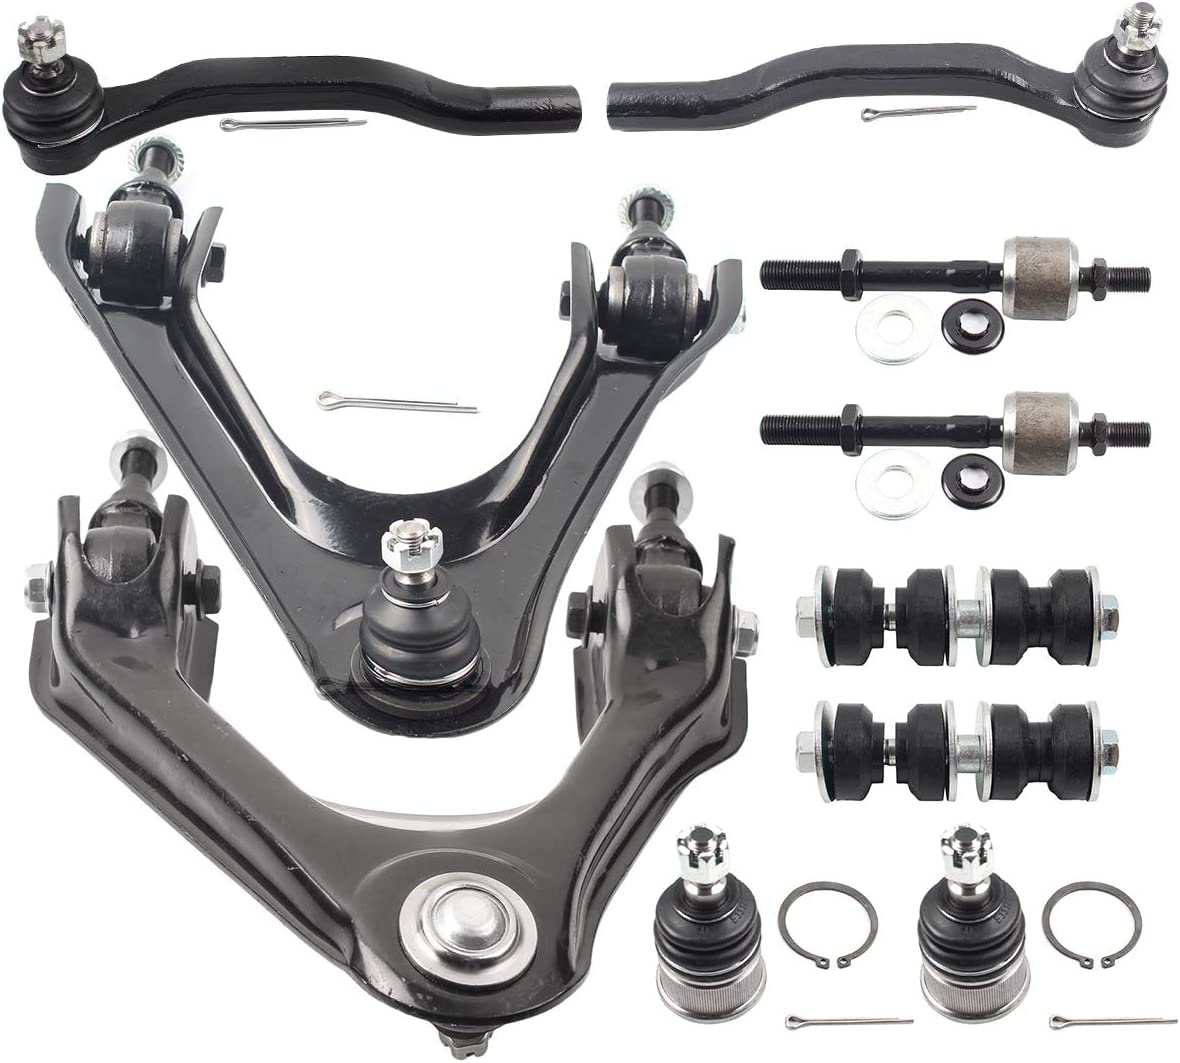 Honda 1990-1997 Accord /& 1995-1998 Odyssey 1996-1999 Isuzu Oasis MILLION PARTS 2PC Front Left Right Stabilizer Sway Bar End Links Suspension Kit for Acura 1997-1999 CL /& 1995-1998 TL